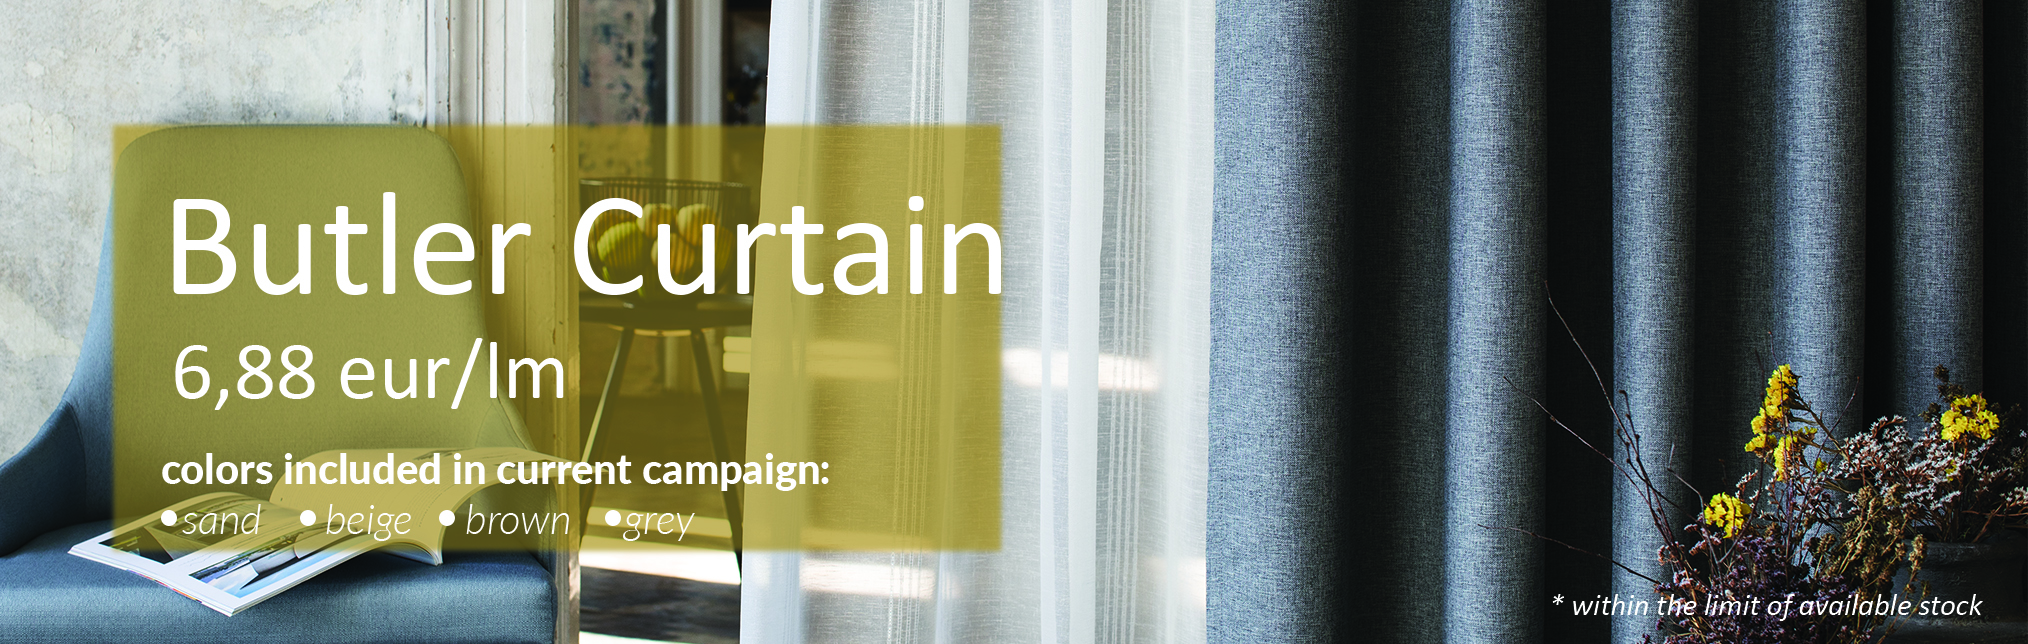 October Promotions - Butler Curtain